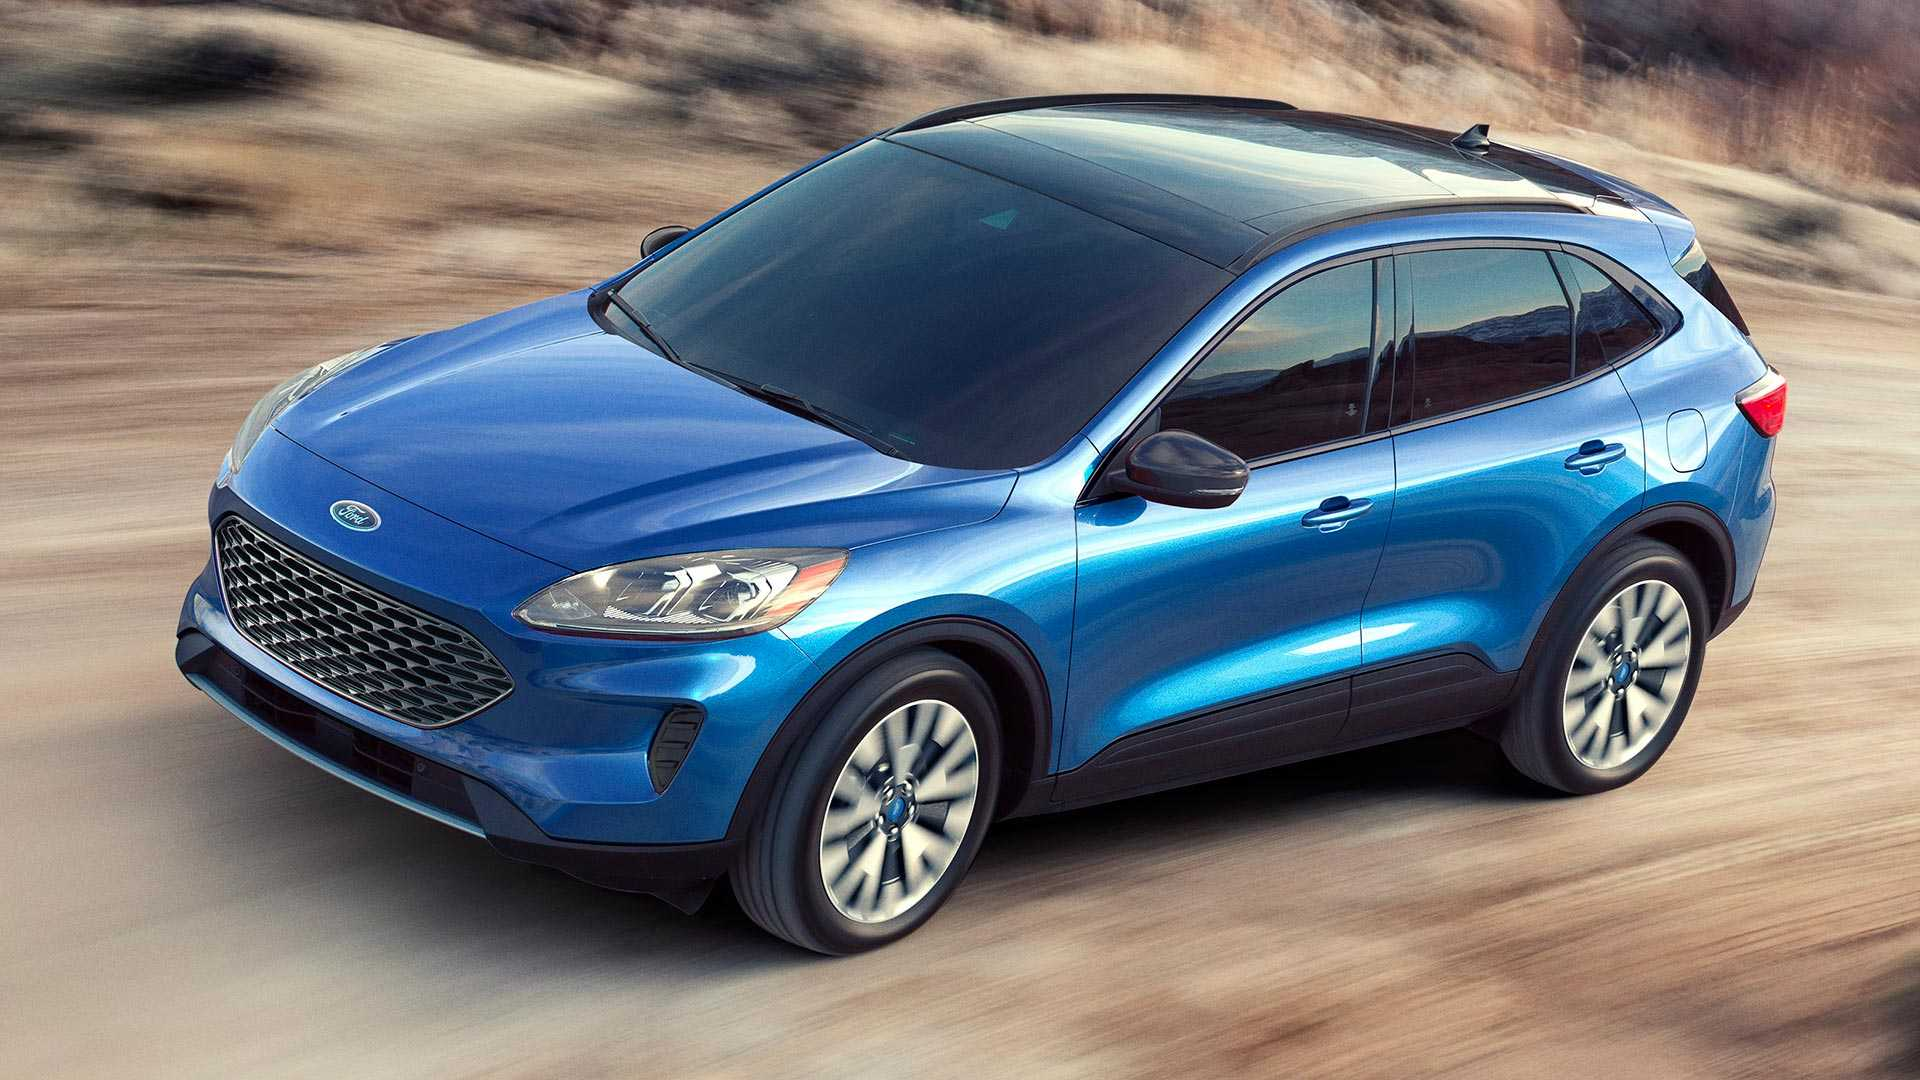 21 All New Ford News 2020 Specs And Review